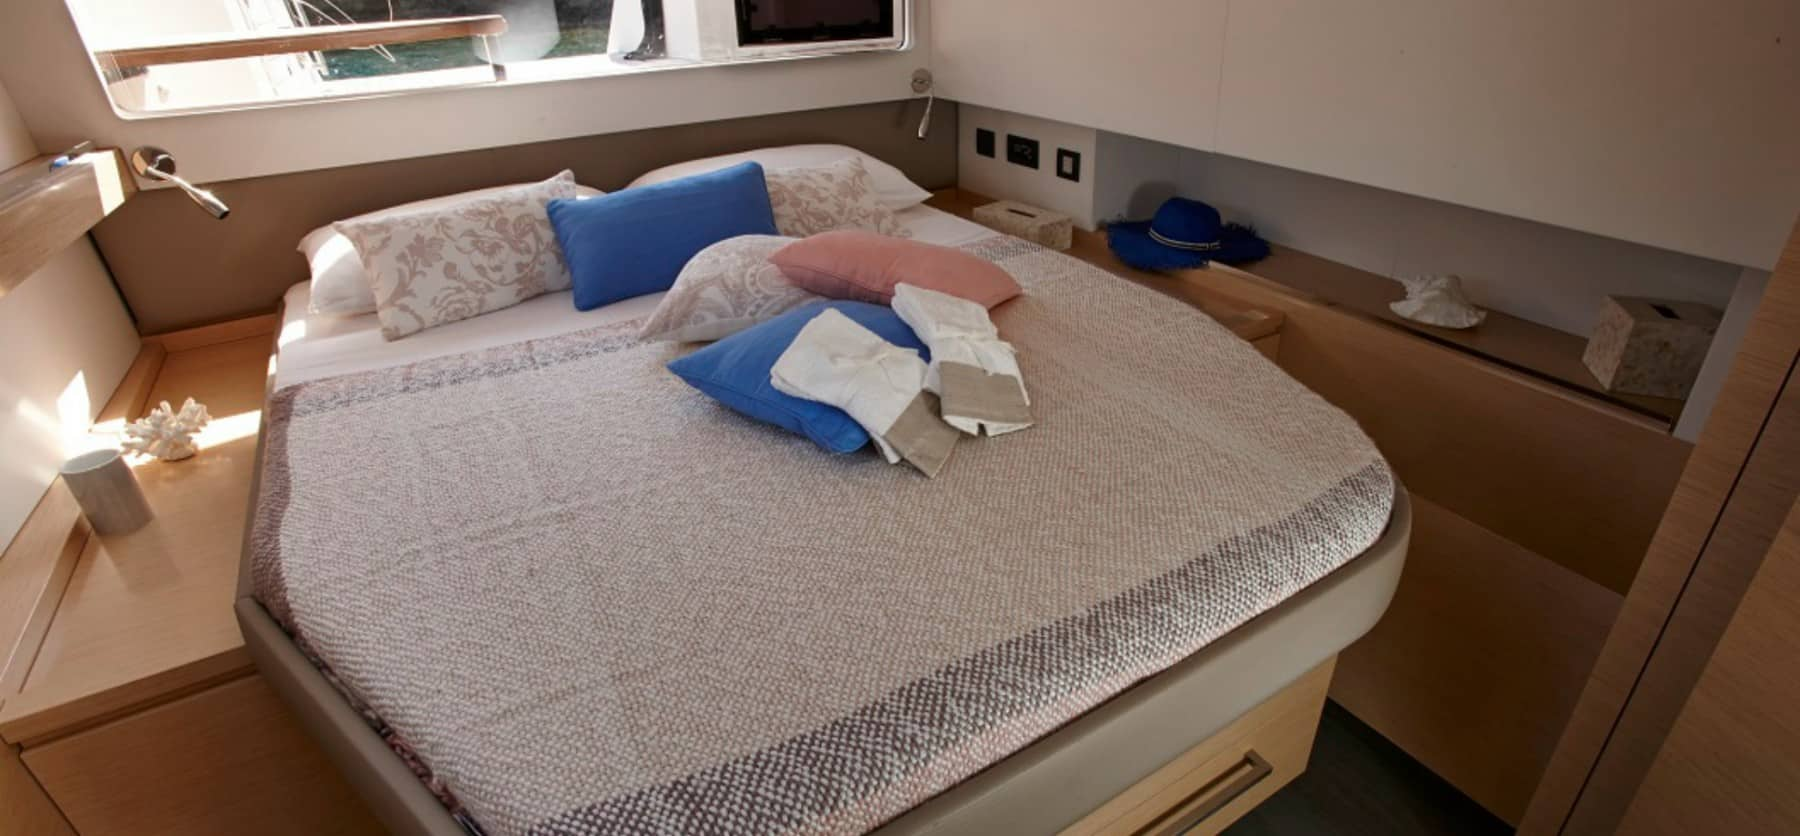 Massive doublebed in the cabin of the Fountain Pajot Ipanema 58